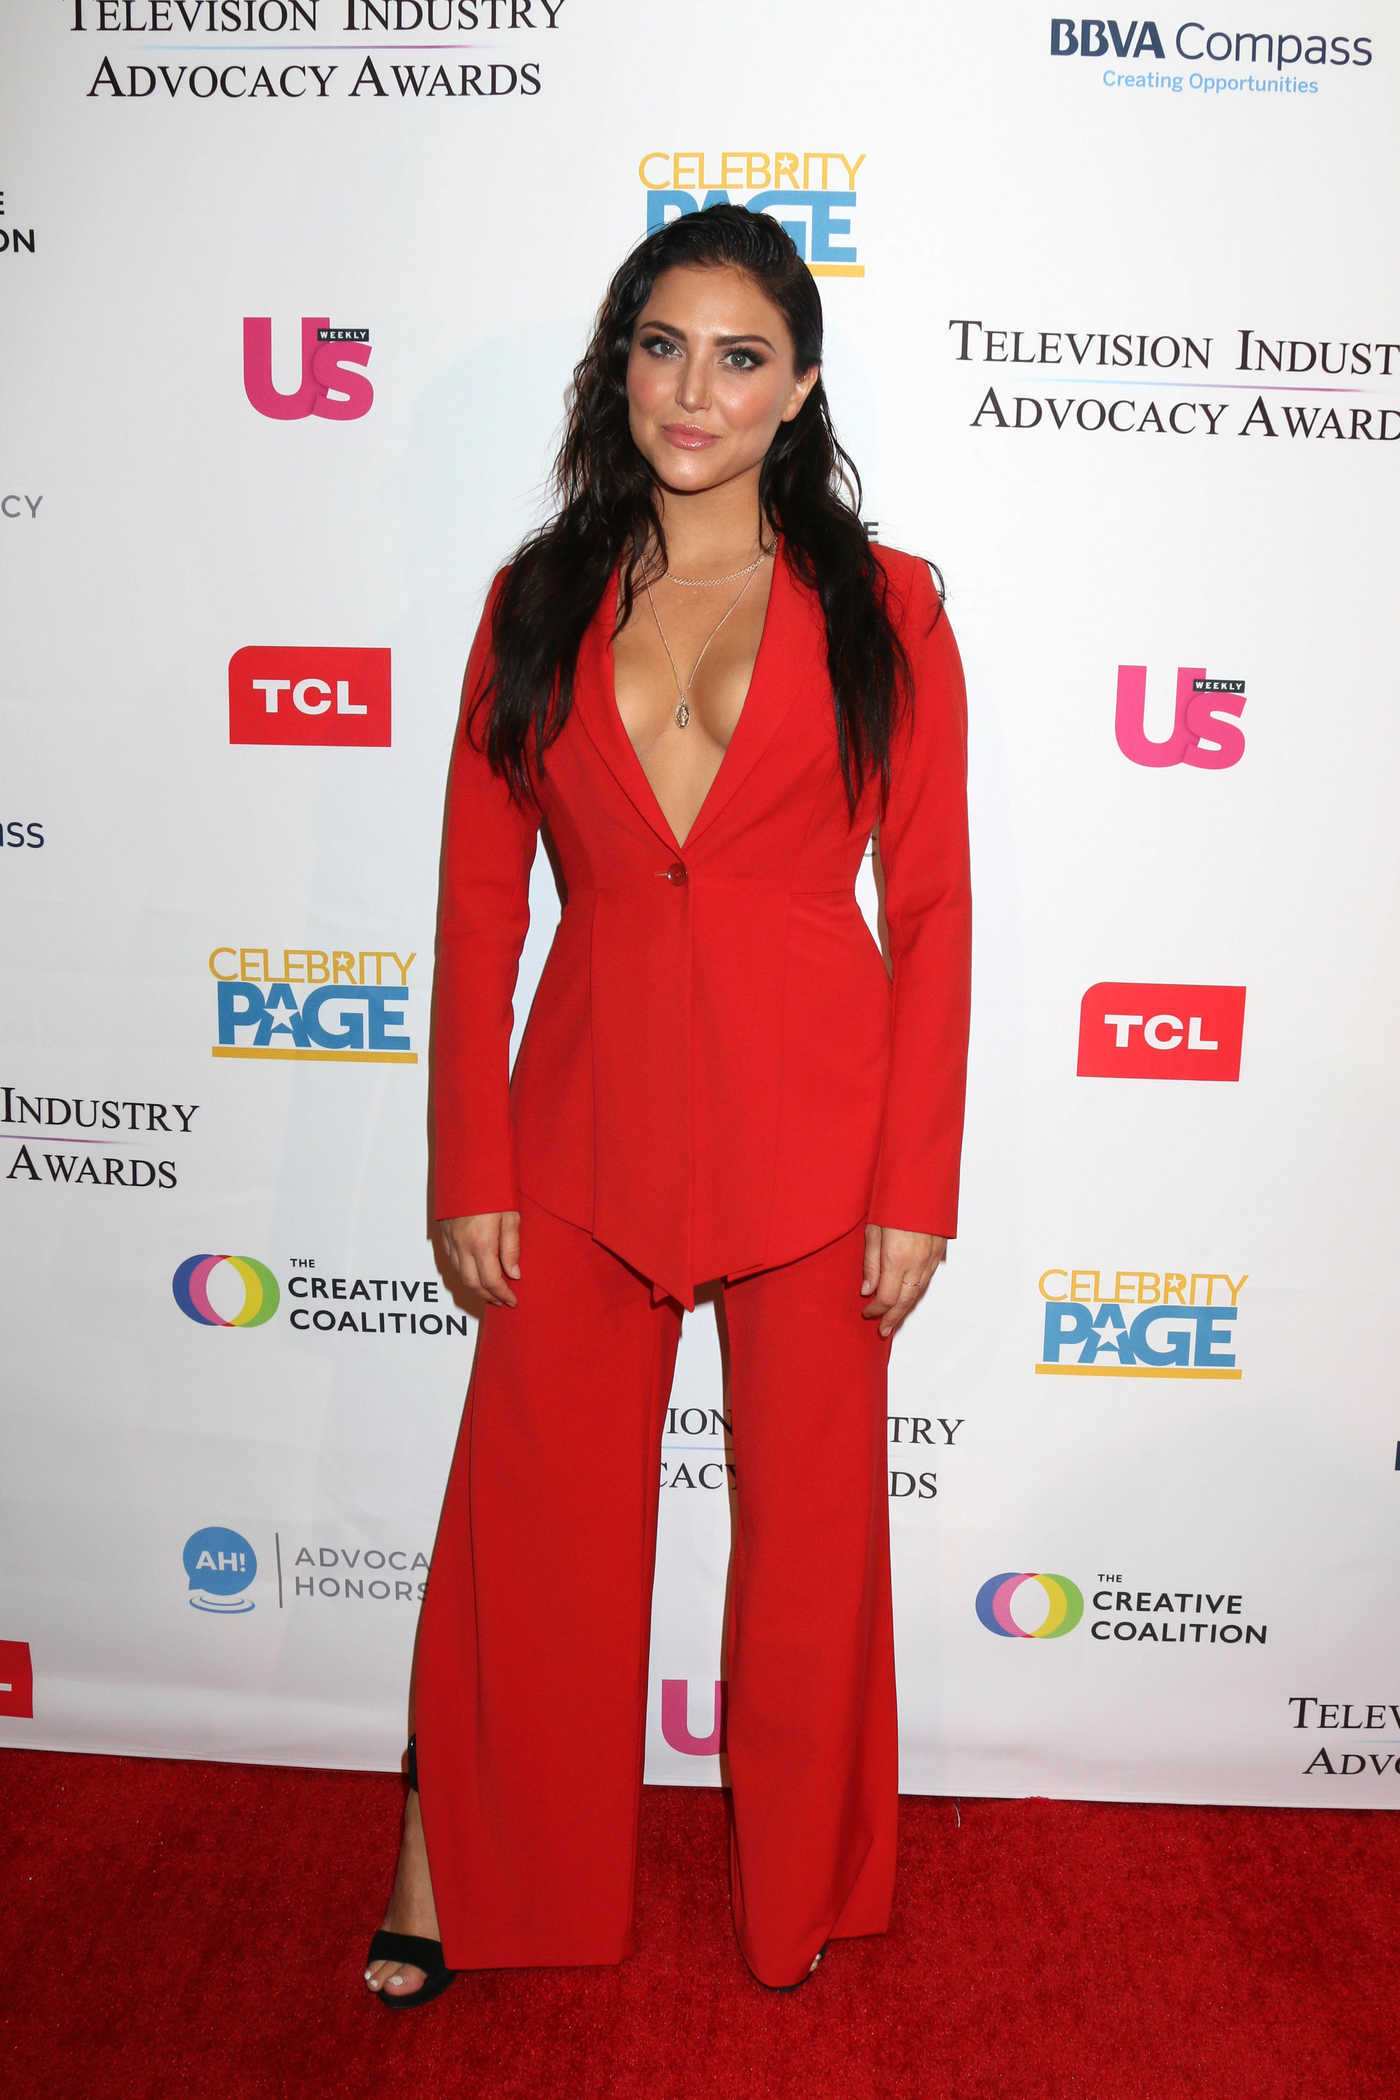 Cassie Scerbo at 2018 Television Industry Advocacy Awards in LA 09/15/2018